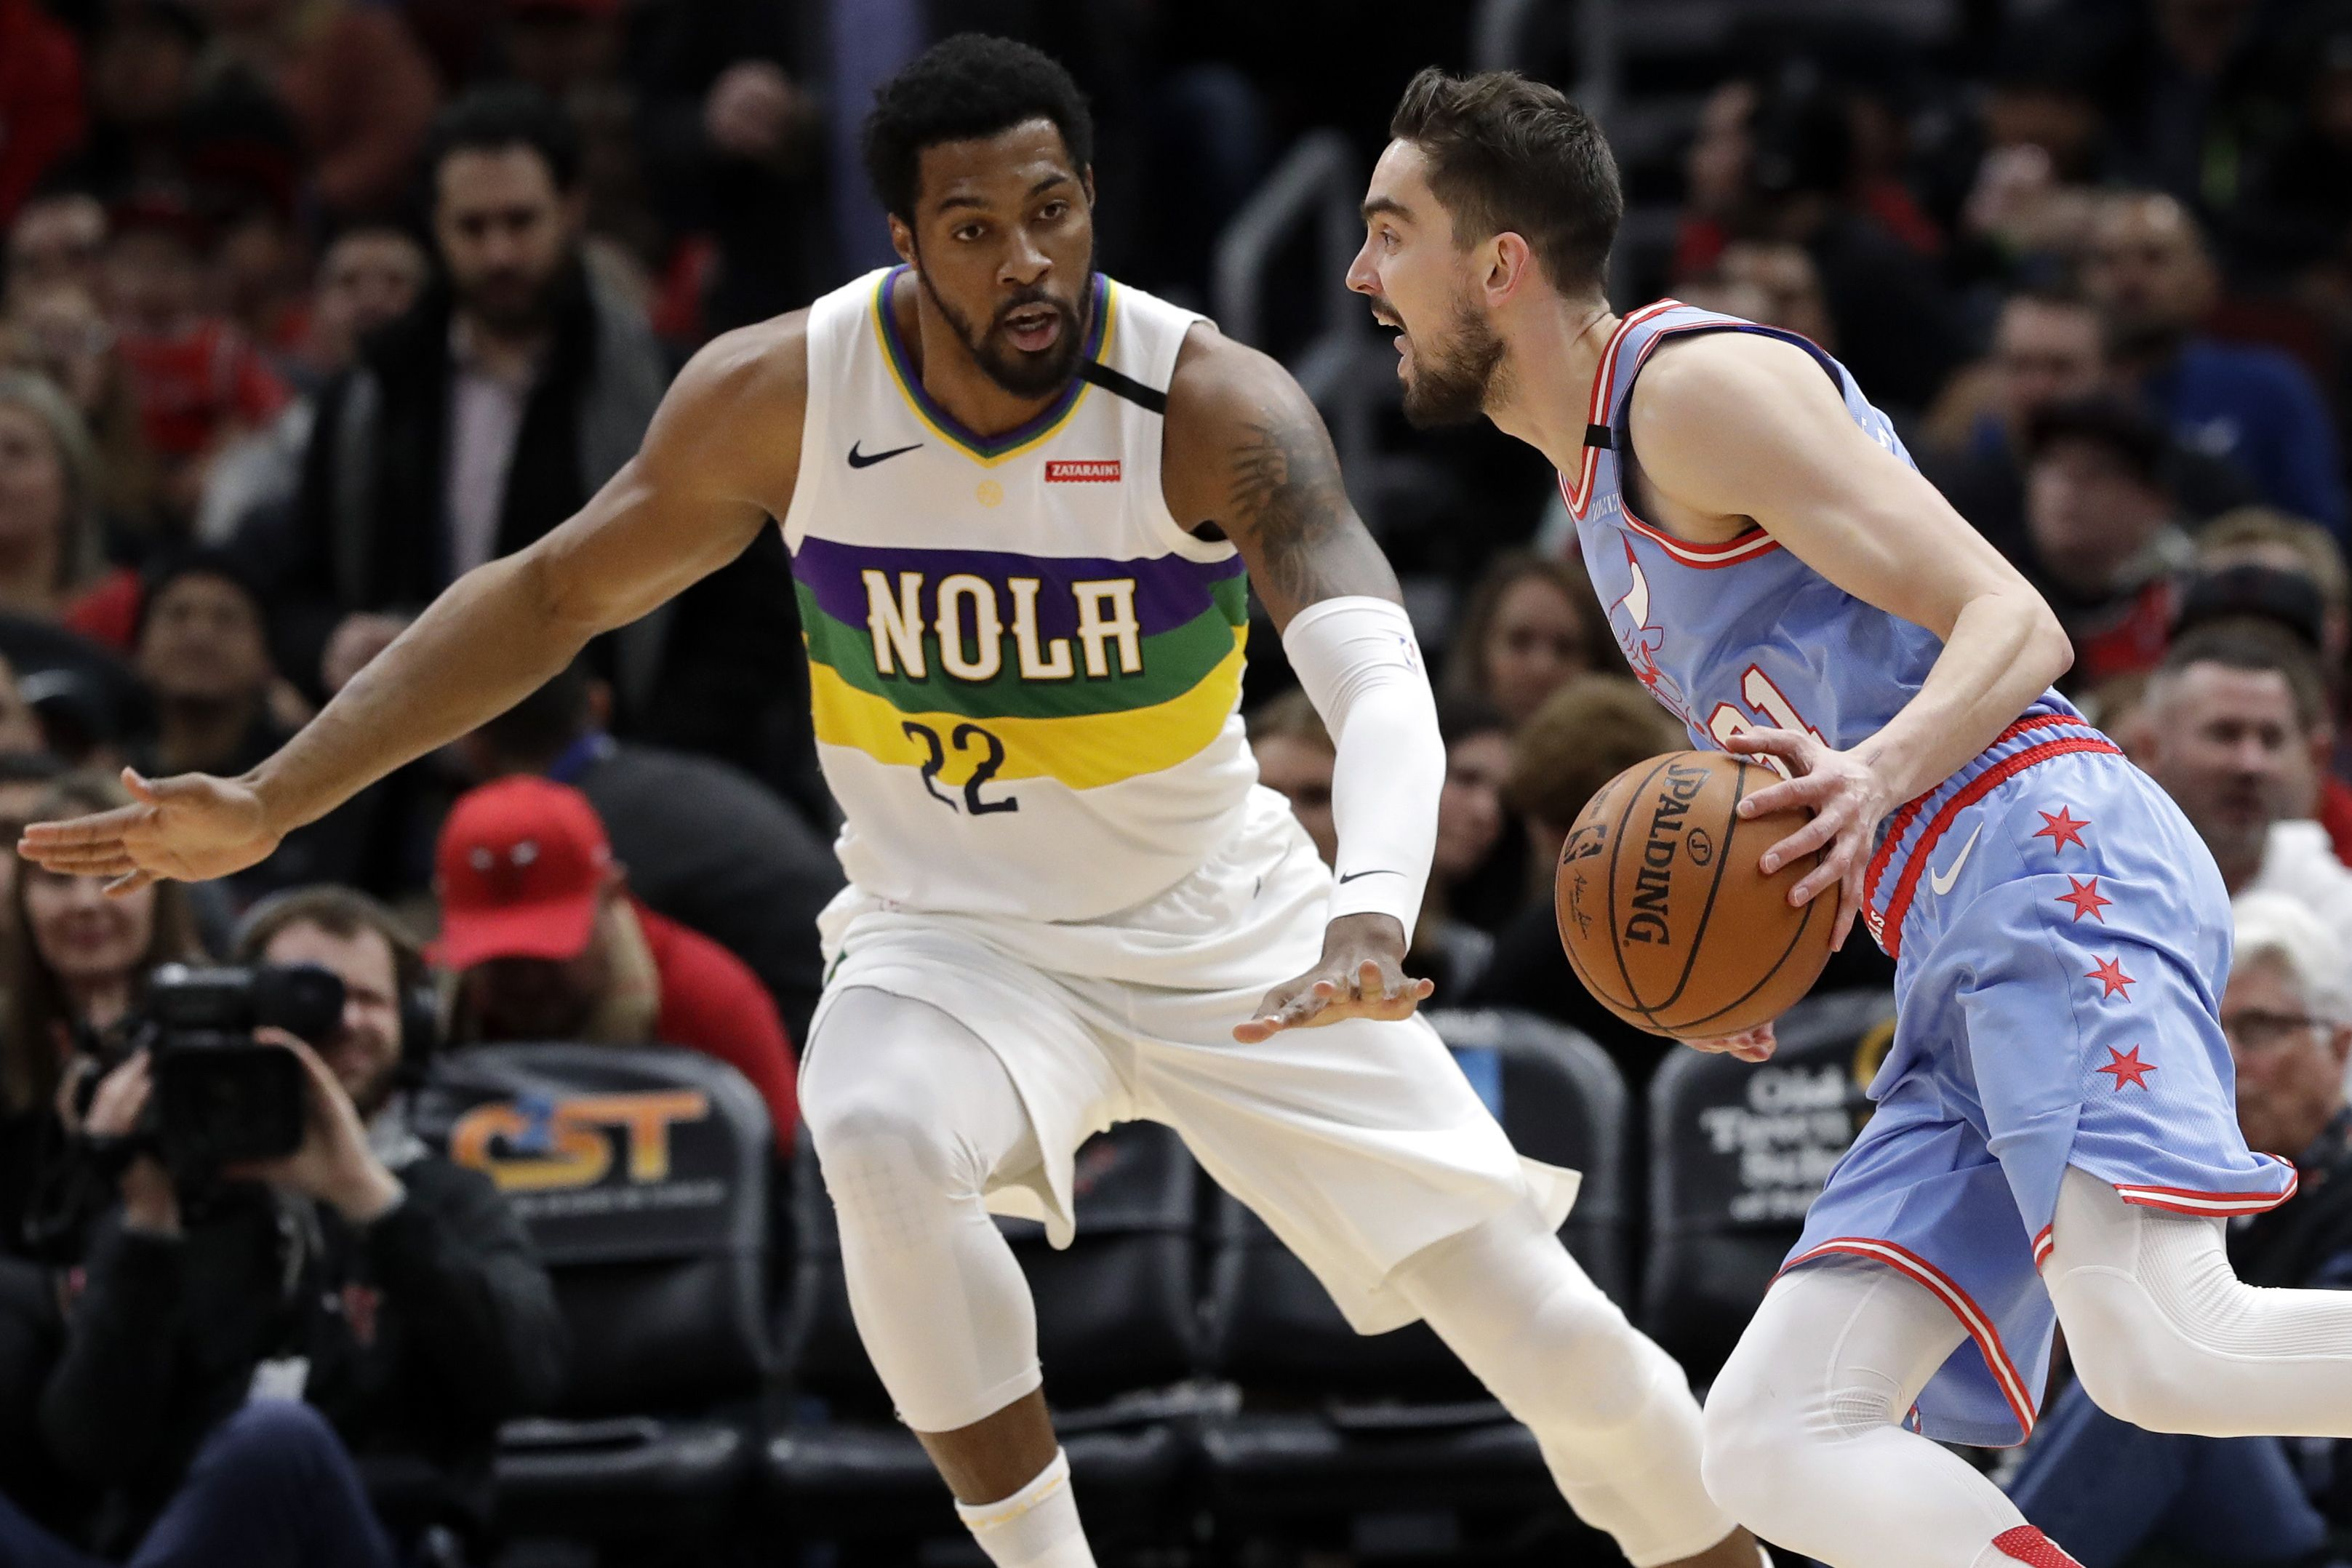 Chicago Bulls guard Tomas Satoransky, right, drives against New Orleans Pelicans center Derrick Favors during the first half of an NBA basketball game in Chicago, Thursday, Feb. 6, 2020. (AP Photo/Nam Y. Huh)